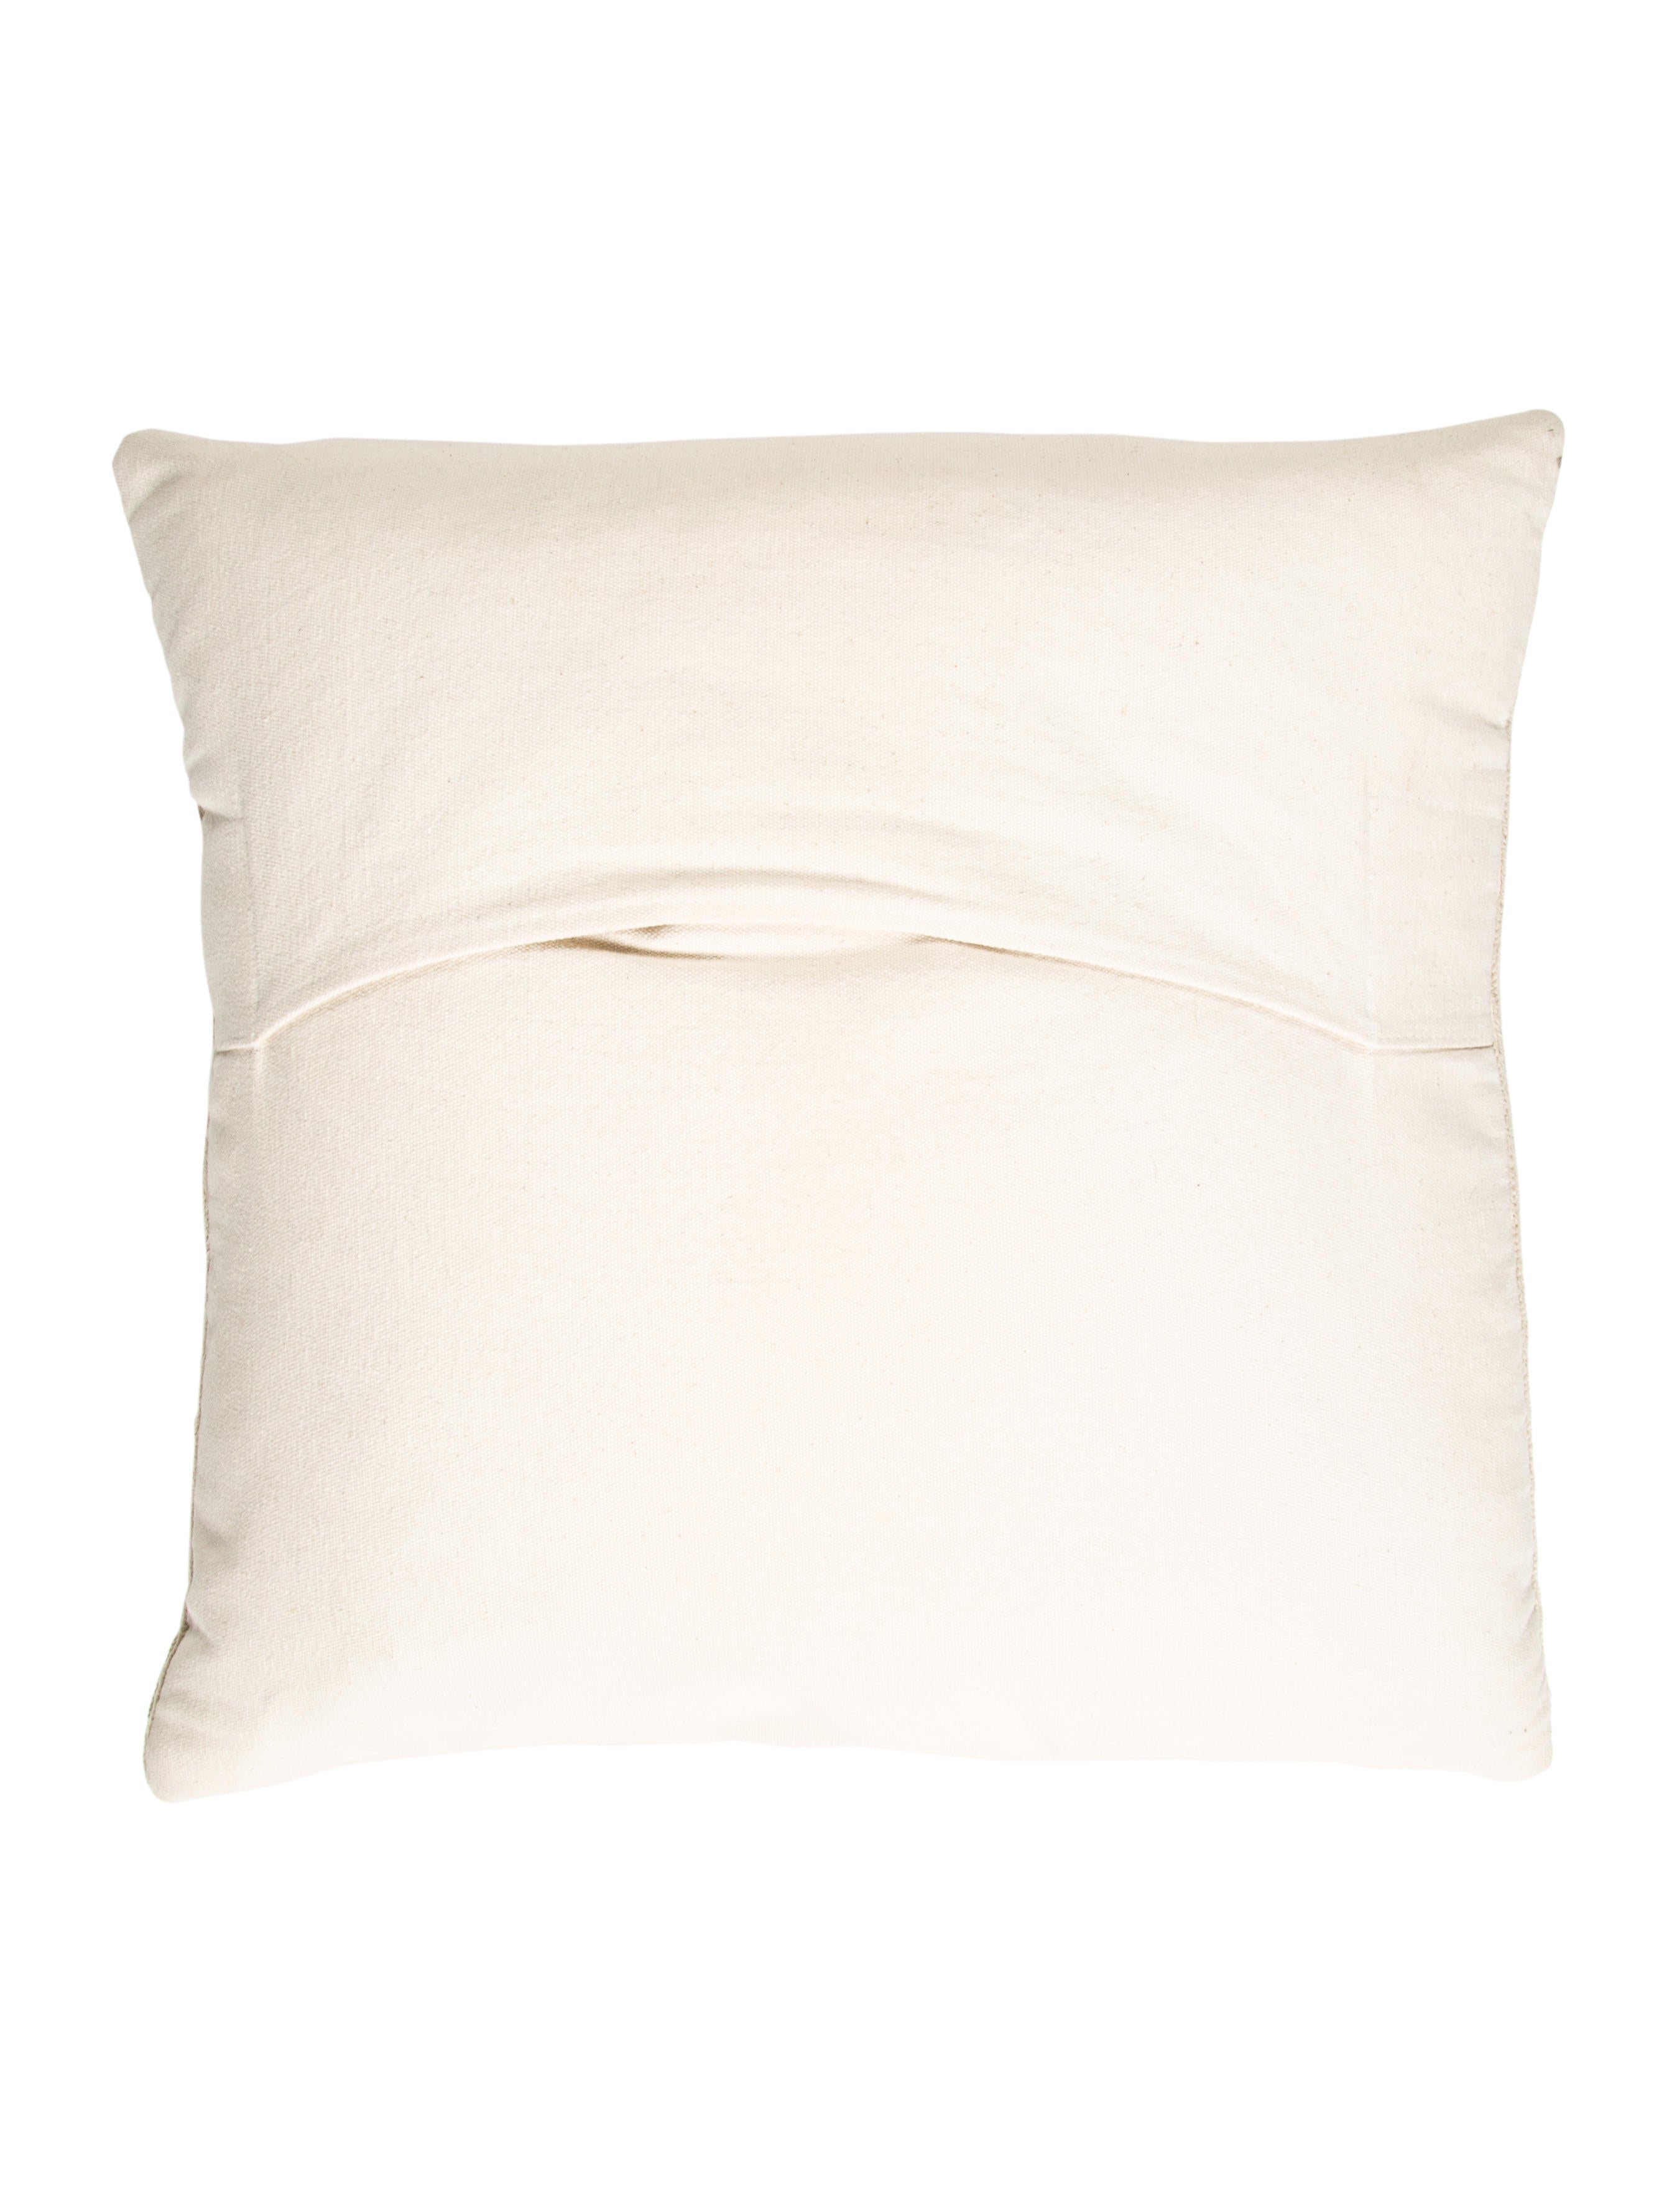 Judy Ross Throw Pillow - Pillows And Throws - PILLO20127 The RealReal